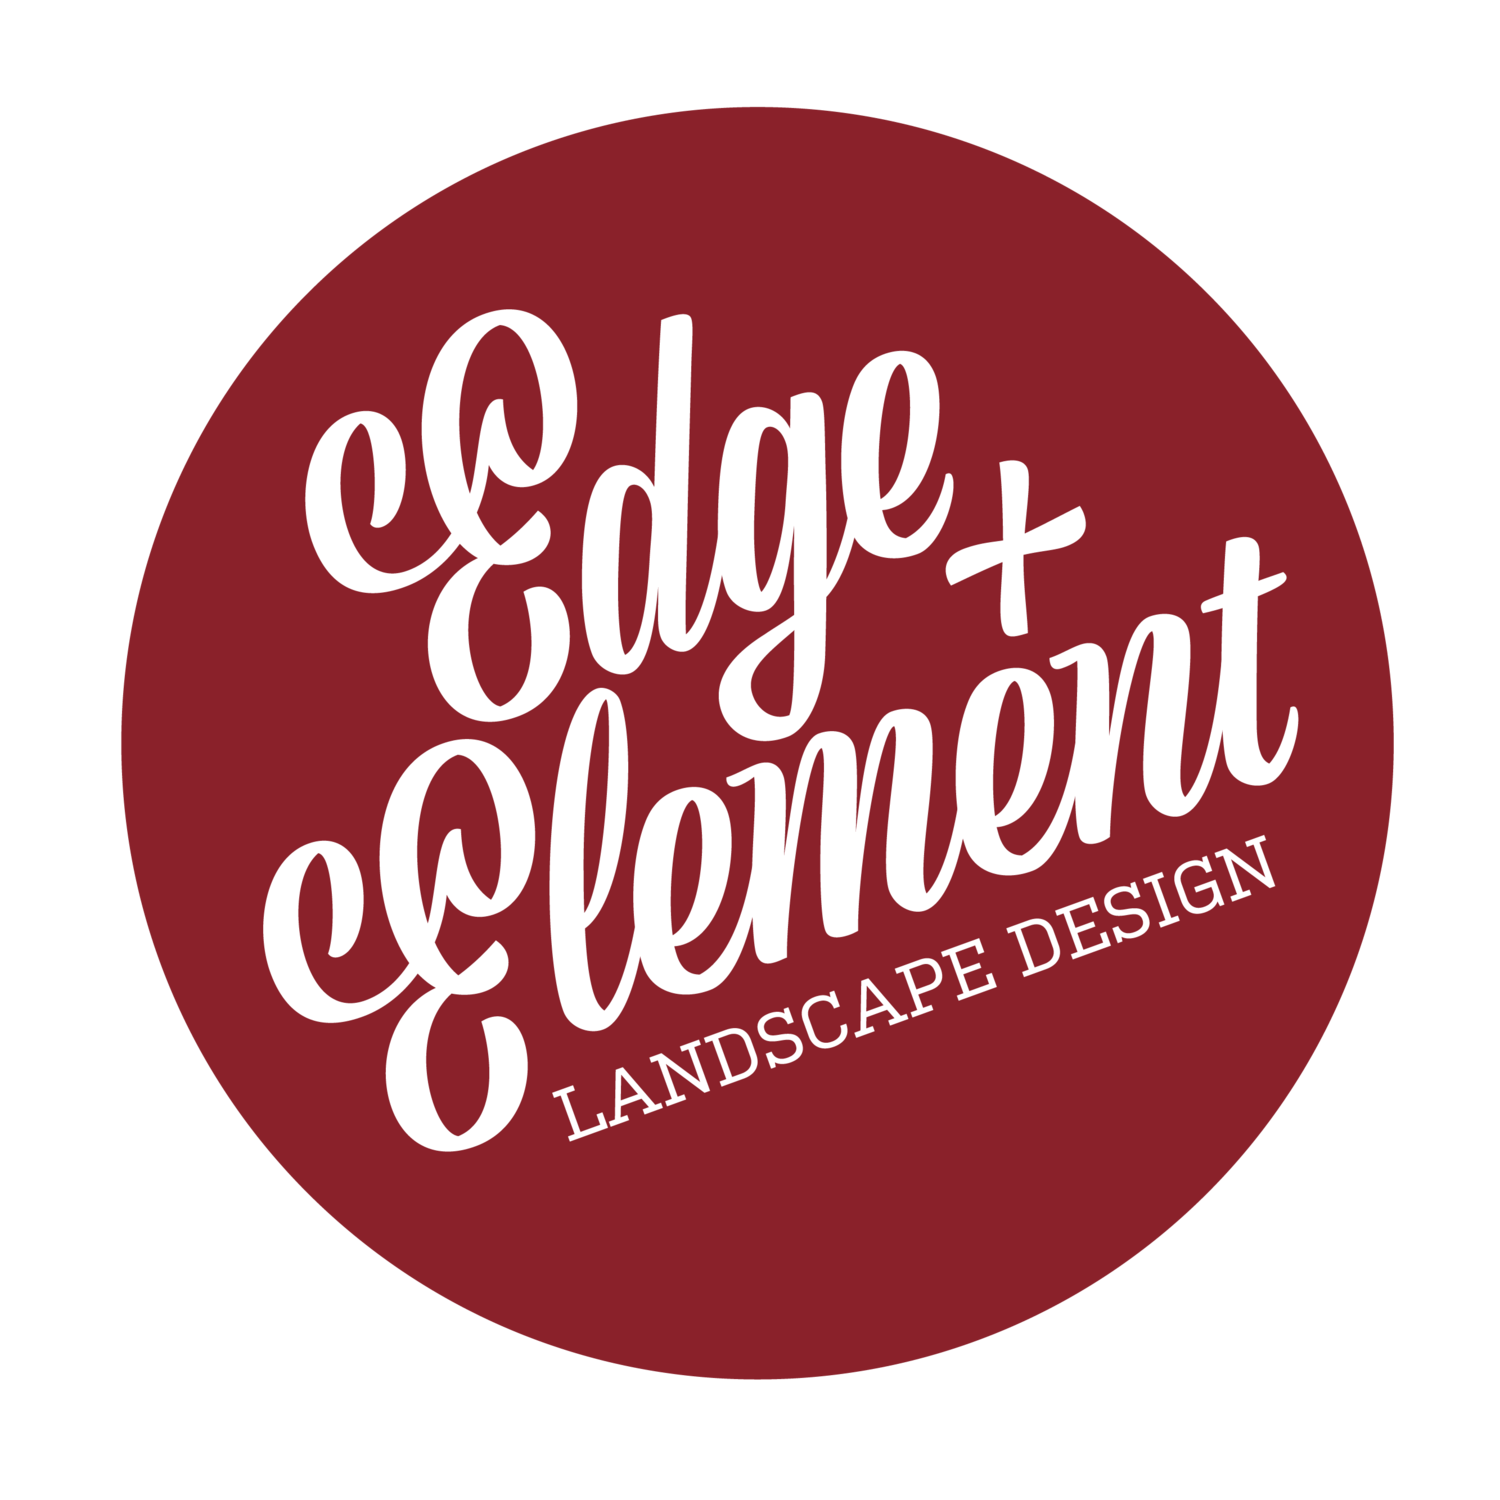 edge and element